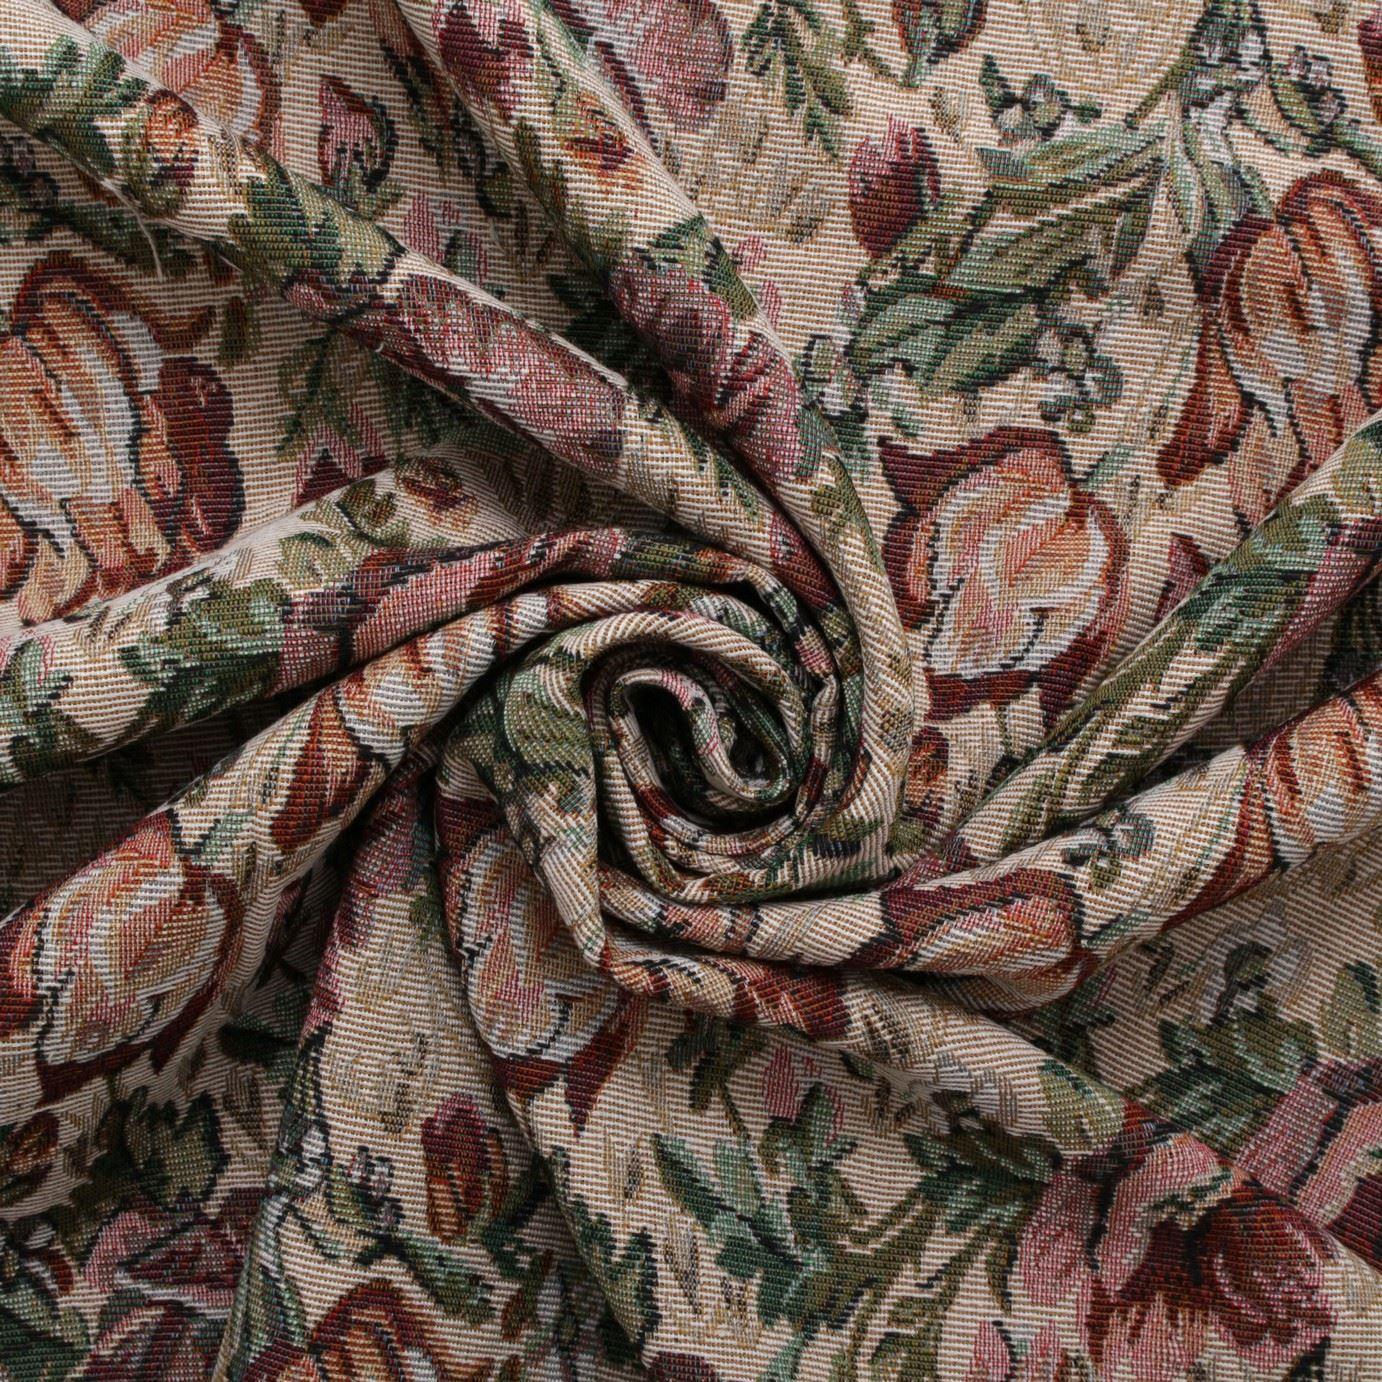 English Traditional Vintage Floral Garden Tapestry Furnishing Upholstery Fabric